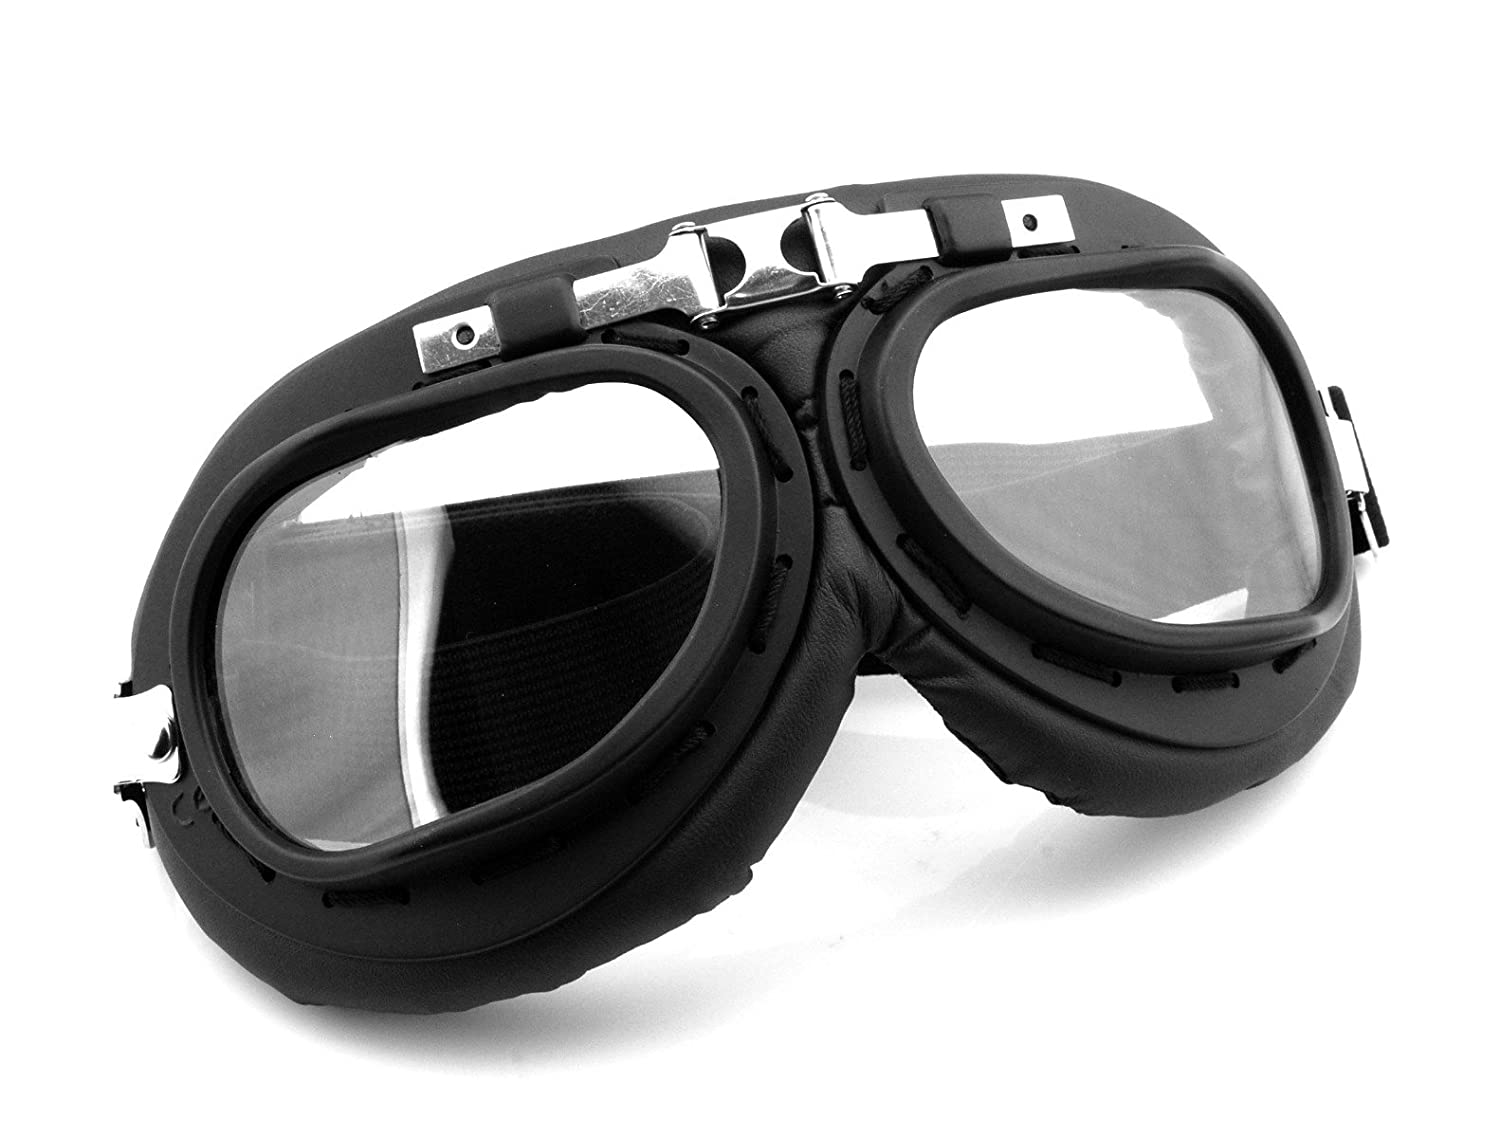 Vintage Motorcycle Racing Parts Clear Lens Riding Helmet Men UV Protection Goggles Glasses For 1983 Honda MVX250F(D) xiberia k9 usb surround stereo gaming headphone with microphone mic pc gamer led breath light headband game headset for lol cf